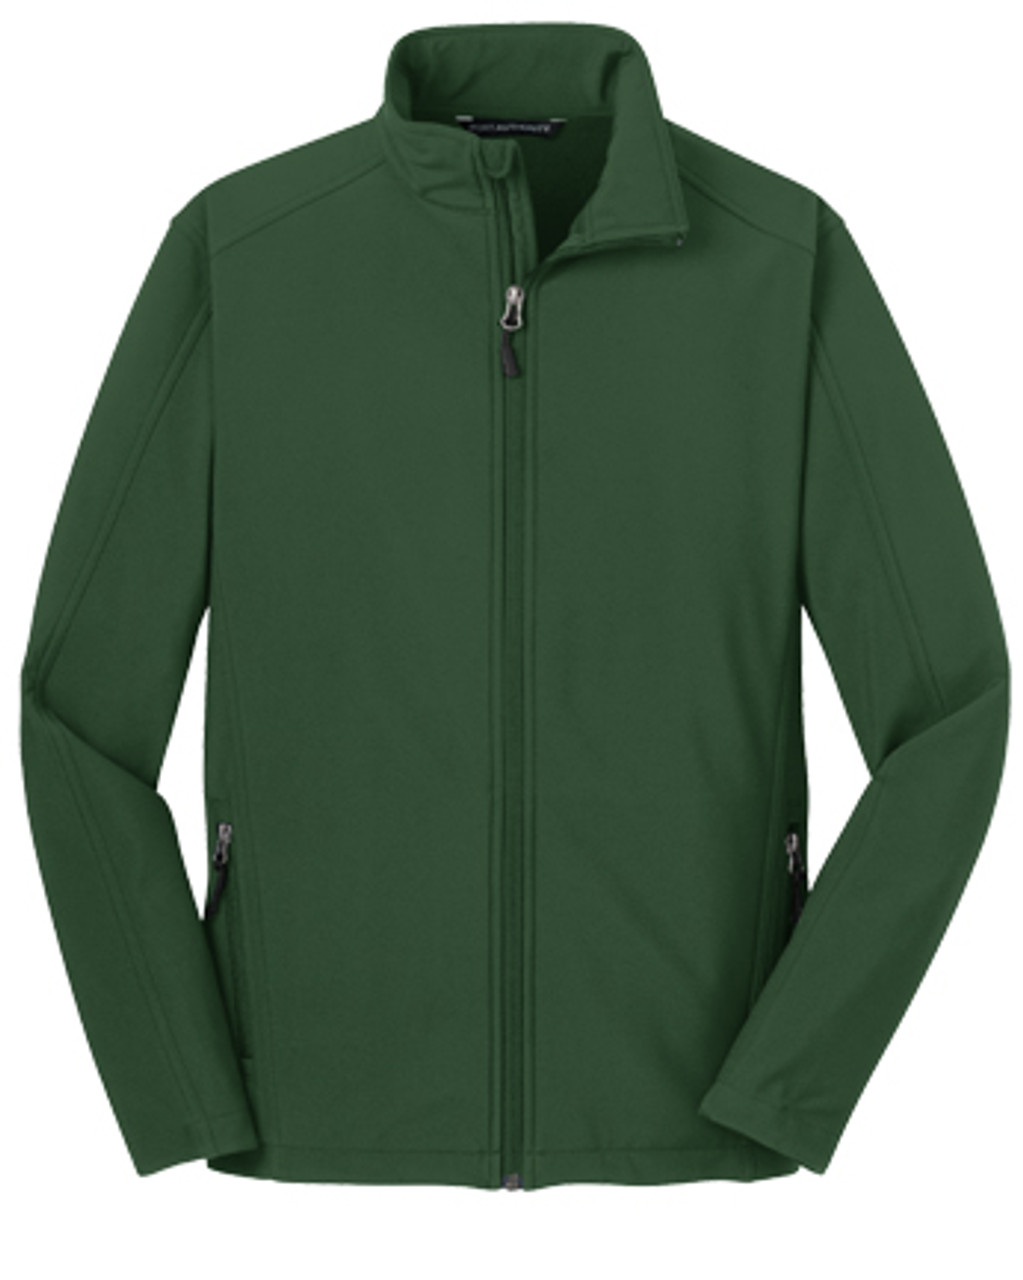 J317: in Forest Green